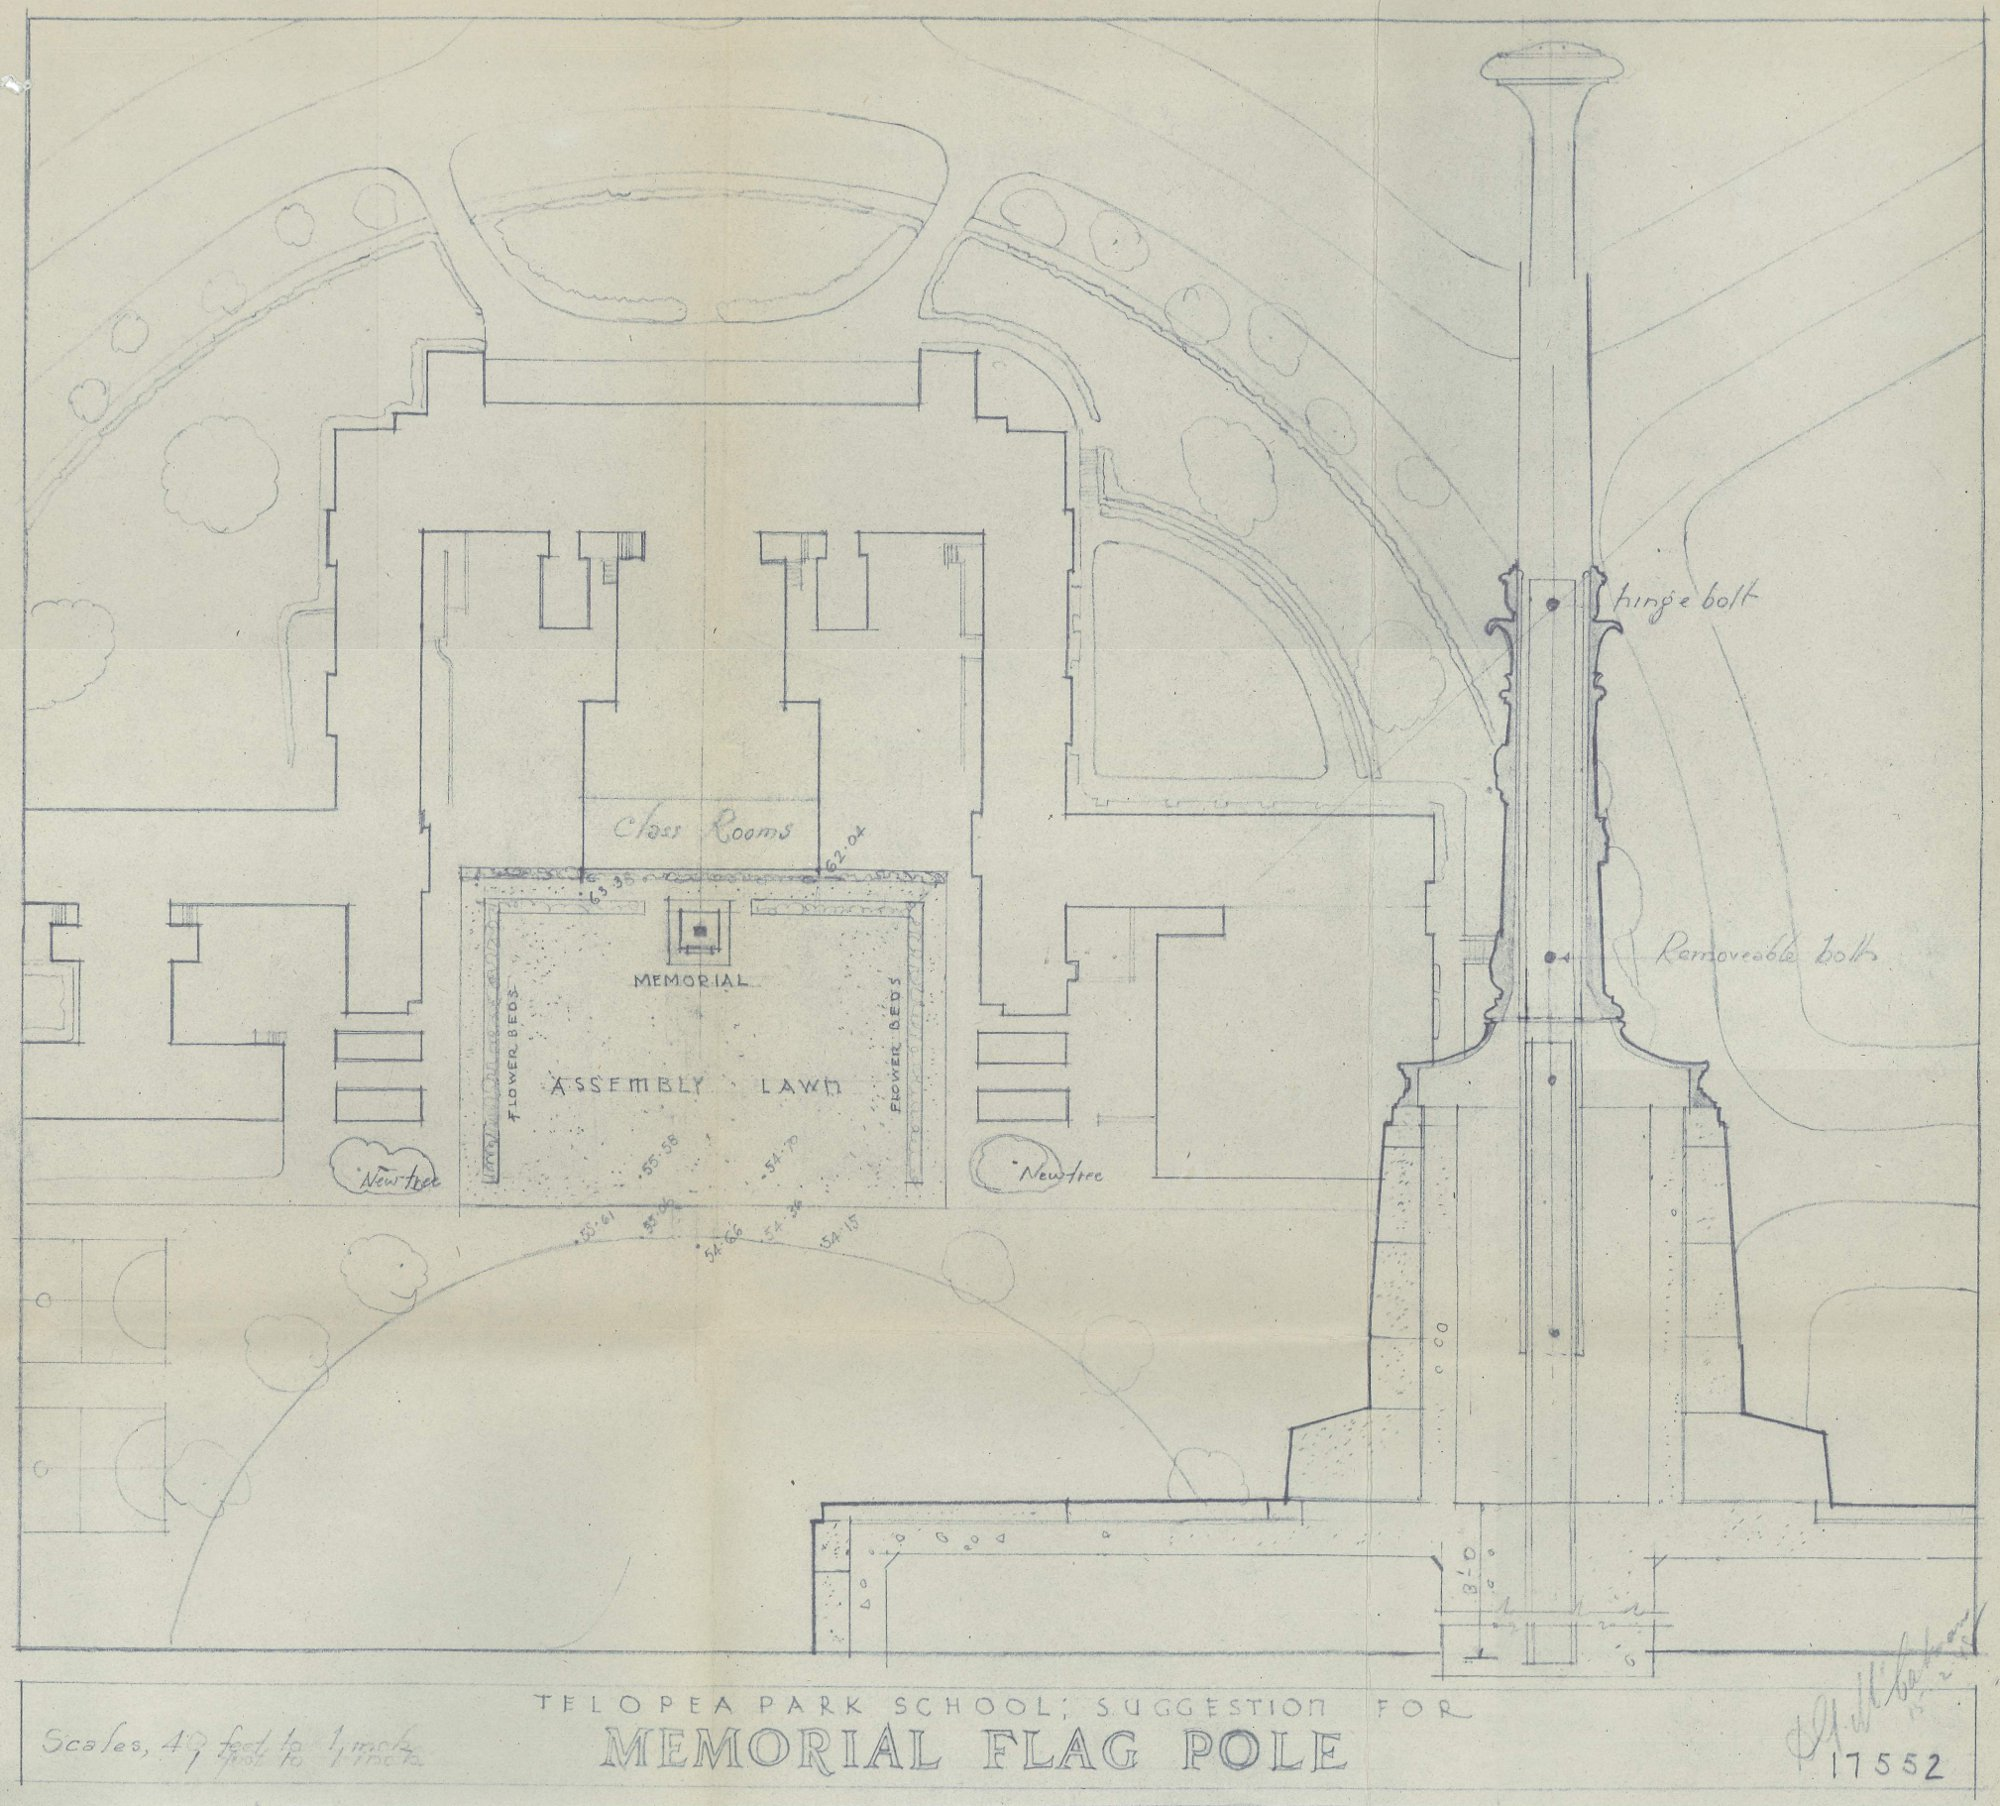 Plan 17552 for Telopea Park War Memorial Flagpole